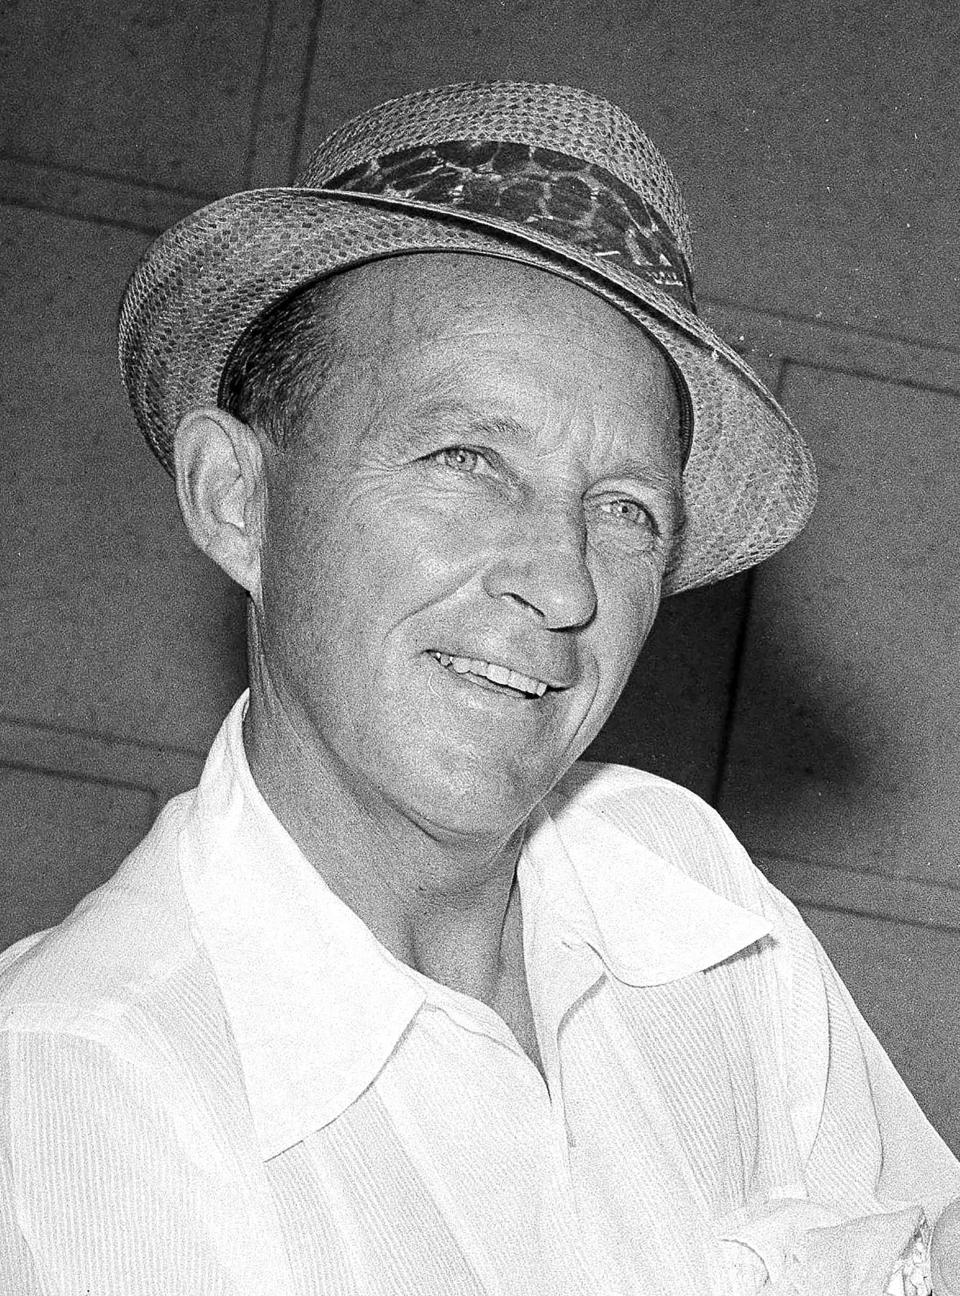 """FILE - Actor-singer Bing Crosby appears in Los Angeles on Sept. 20, 1959. Crosby, who died in 1977, won an Academy Award for best actor for playing a priest in the 1945 film """"Going My Way,"""" and made seven """"road"""" movies with his friend, comic Bob Hope. Some of his hit songs include """"Pennies From Heaven,"""" """"It's Been a Long, Long Time,"""" """"Don't Fence Me In"""" and """"Accentuate the Positive."""" (AP Photo/Don Brinn, File)"""